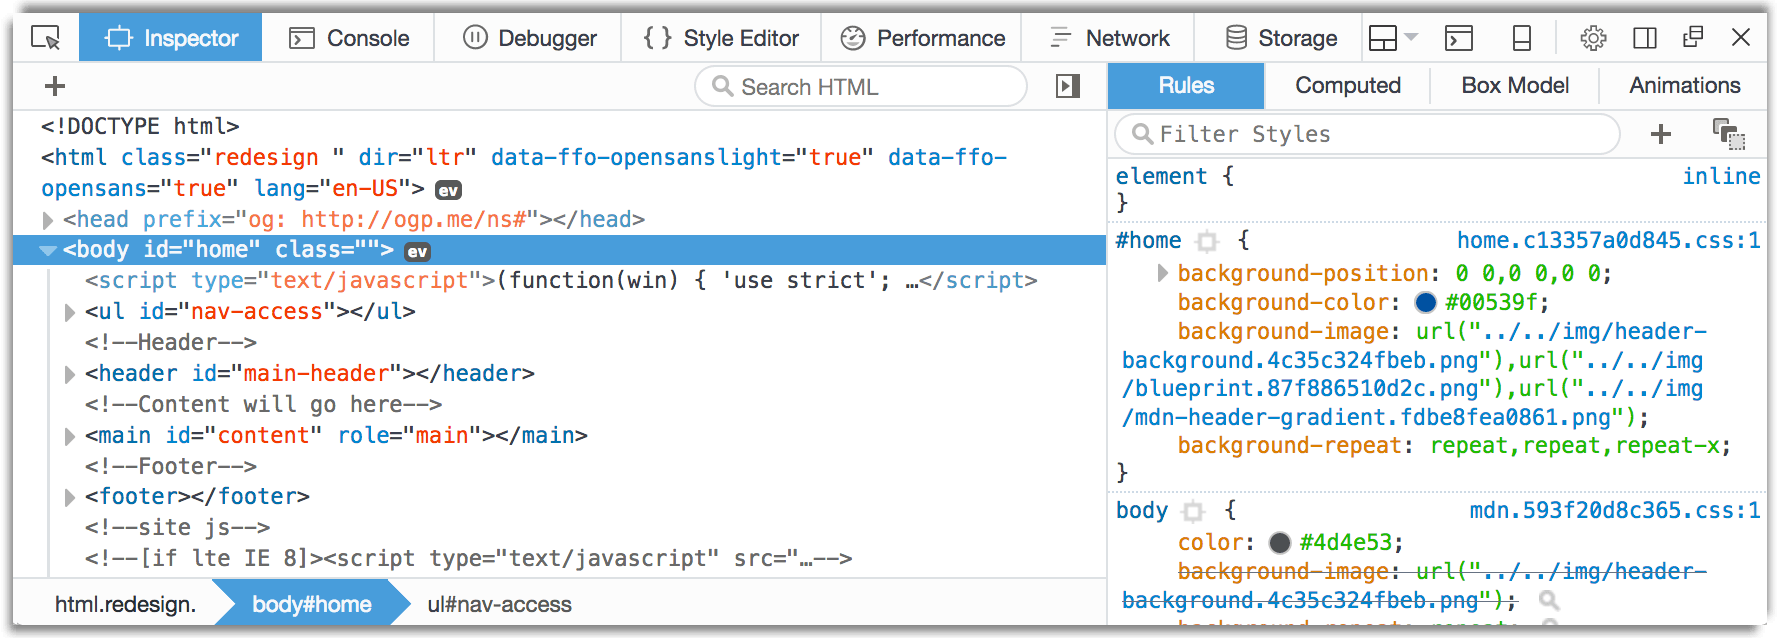 Light theme for DevTools